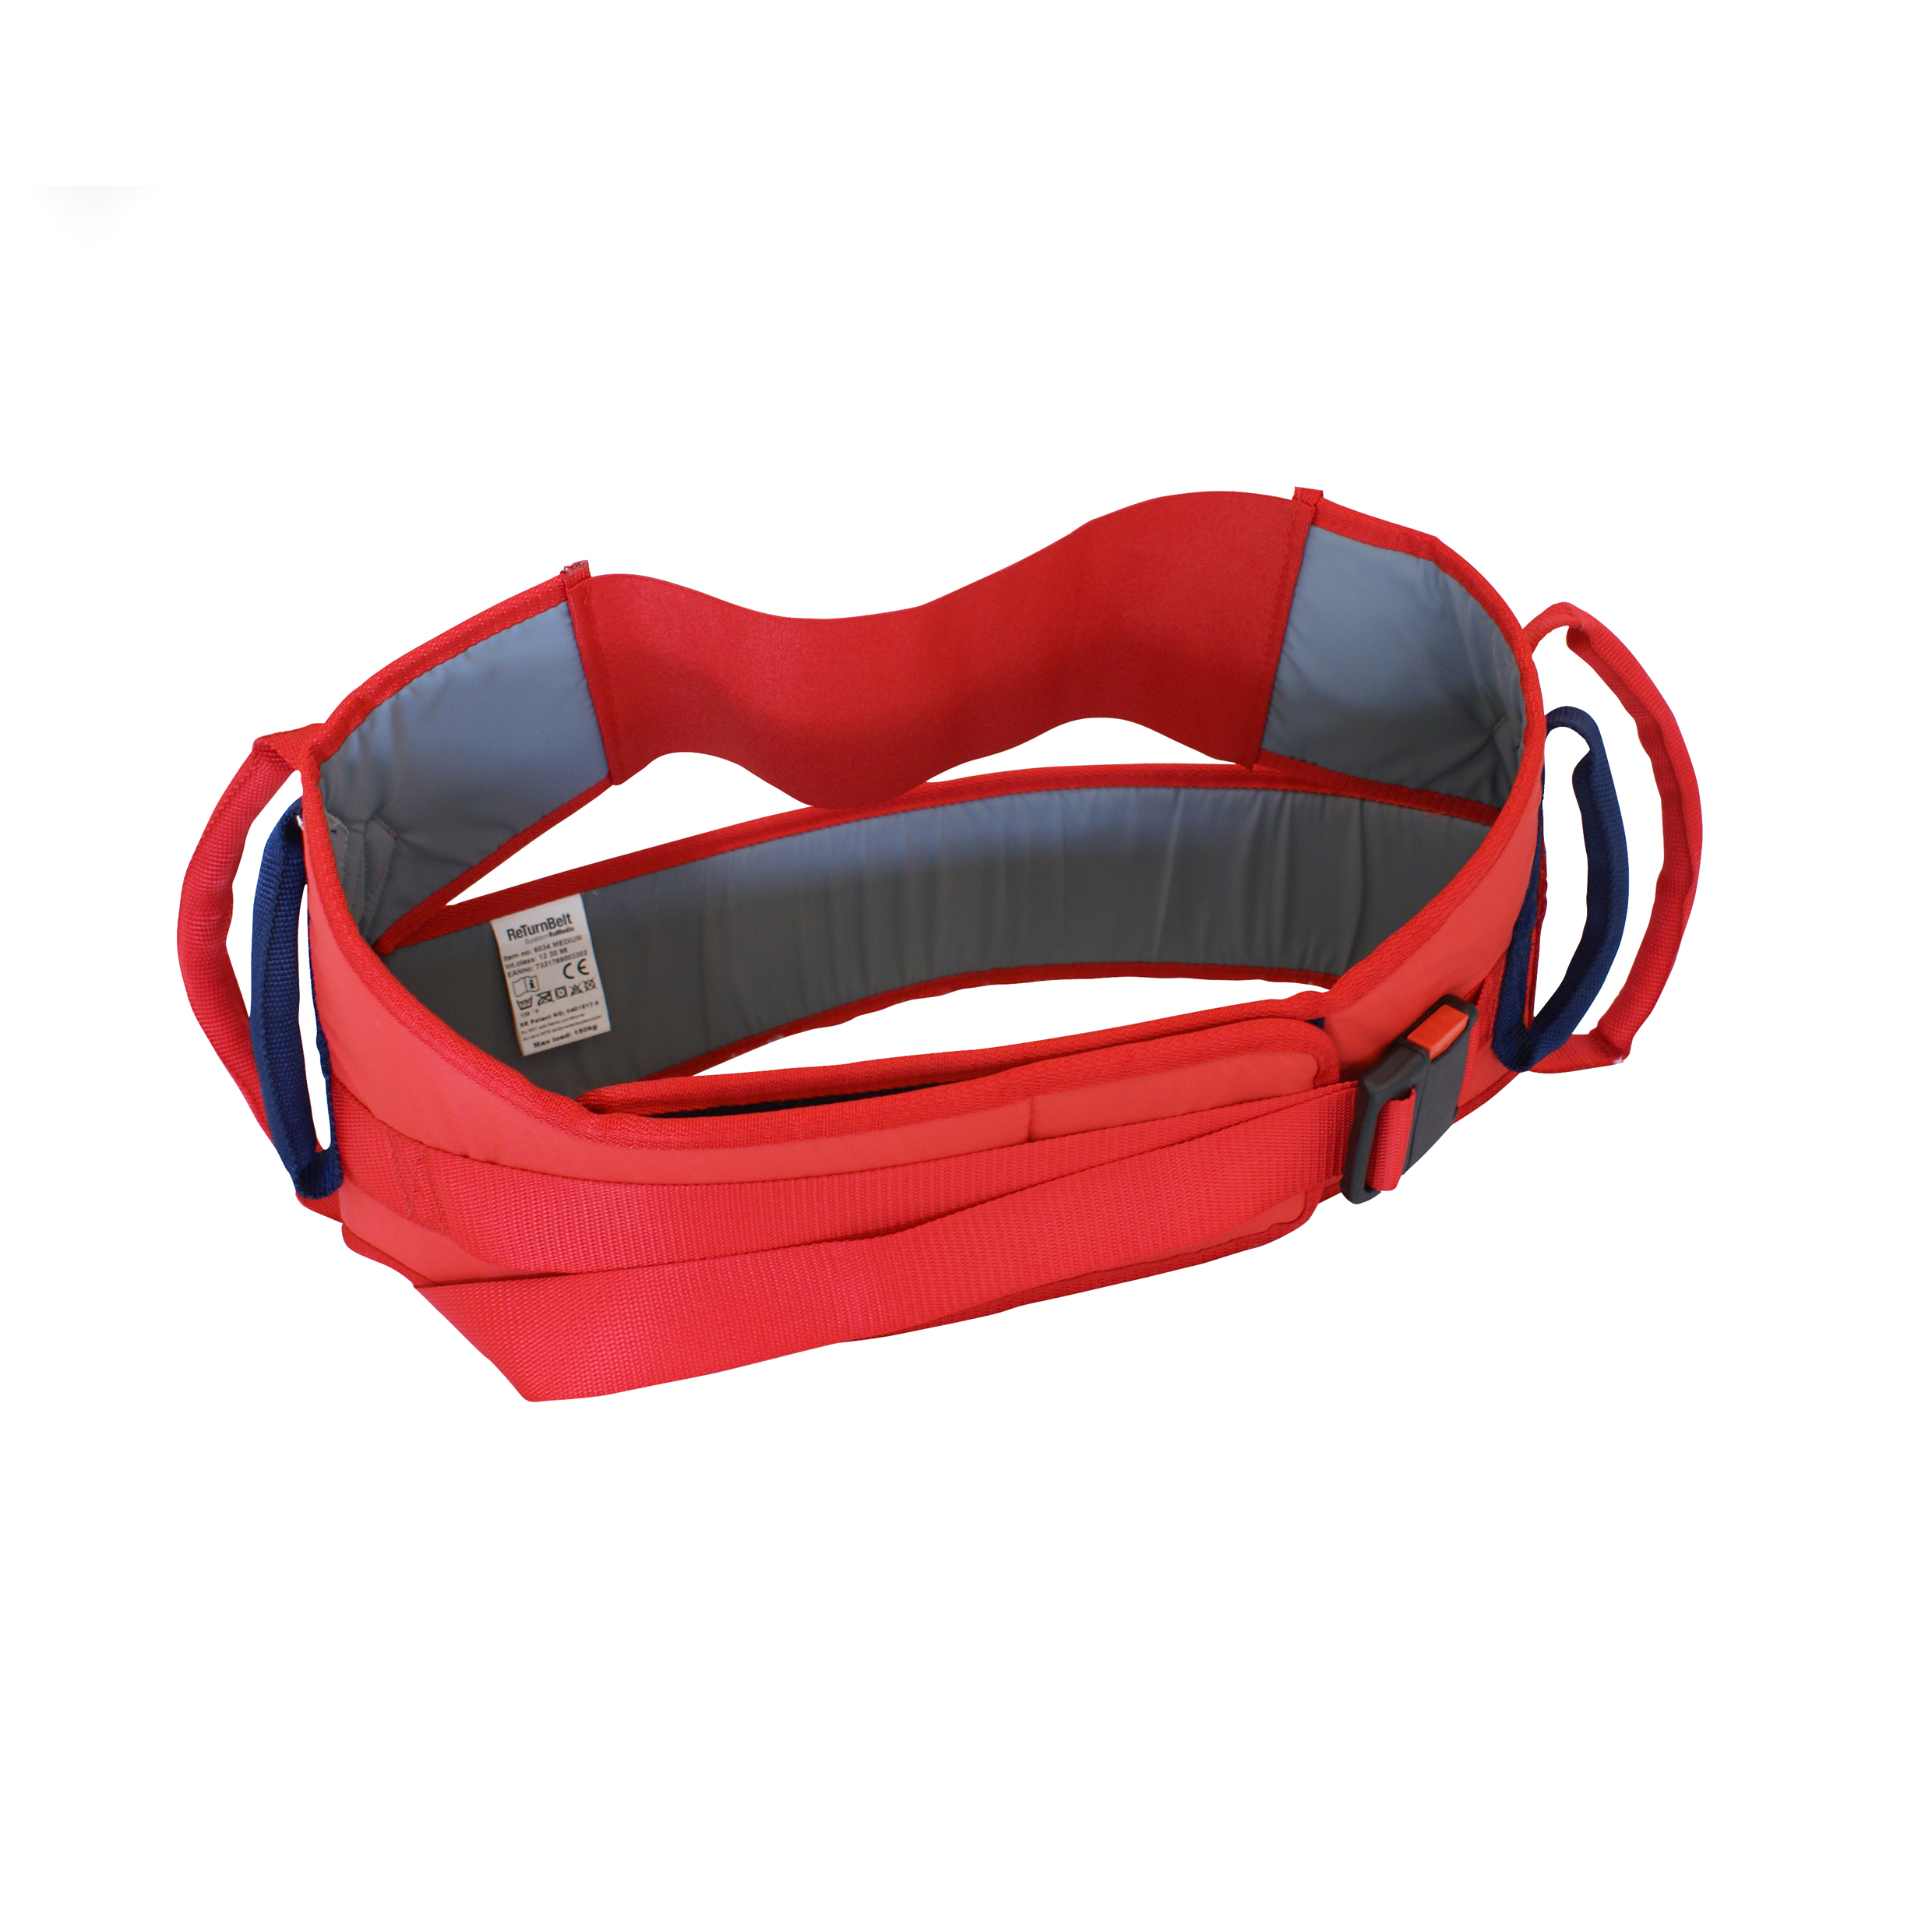 ReTurn Belt - Different sizes available